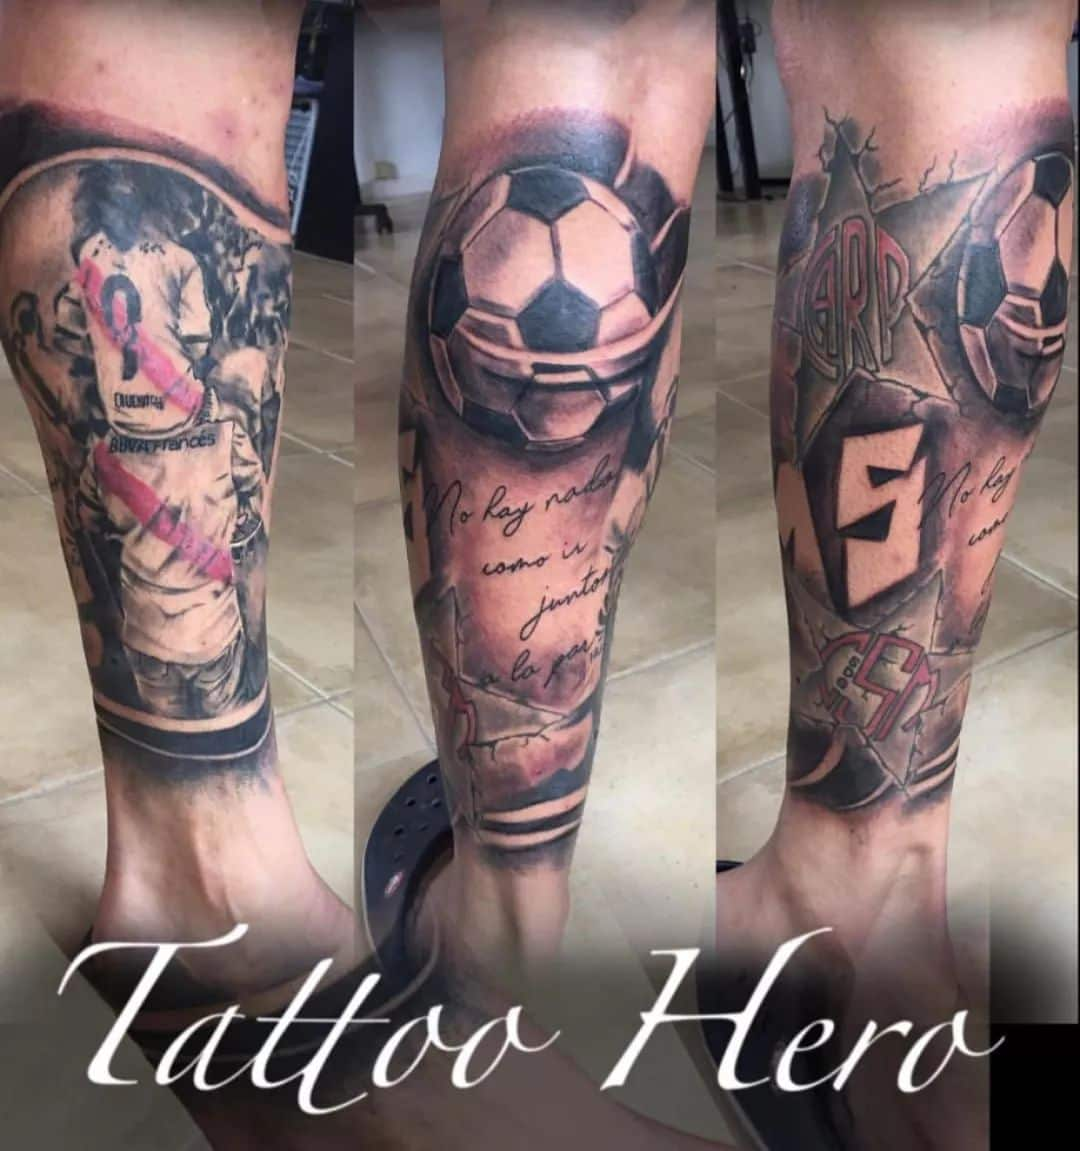 Riverbed Athletic Football Club tattoo